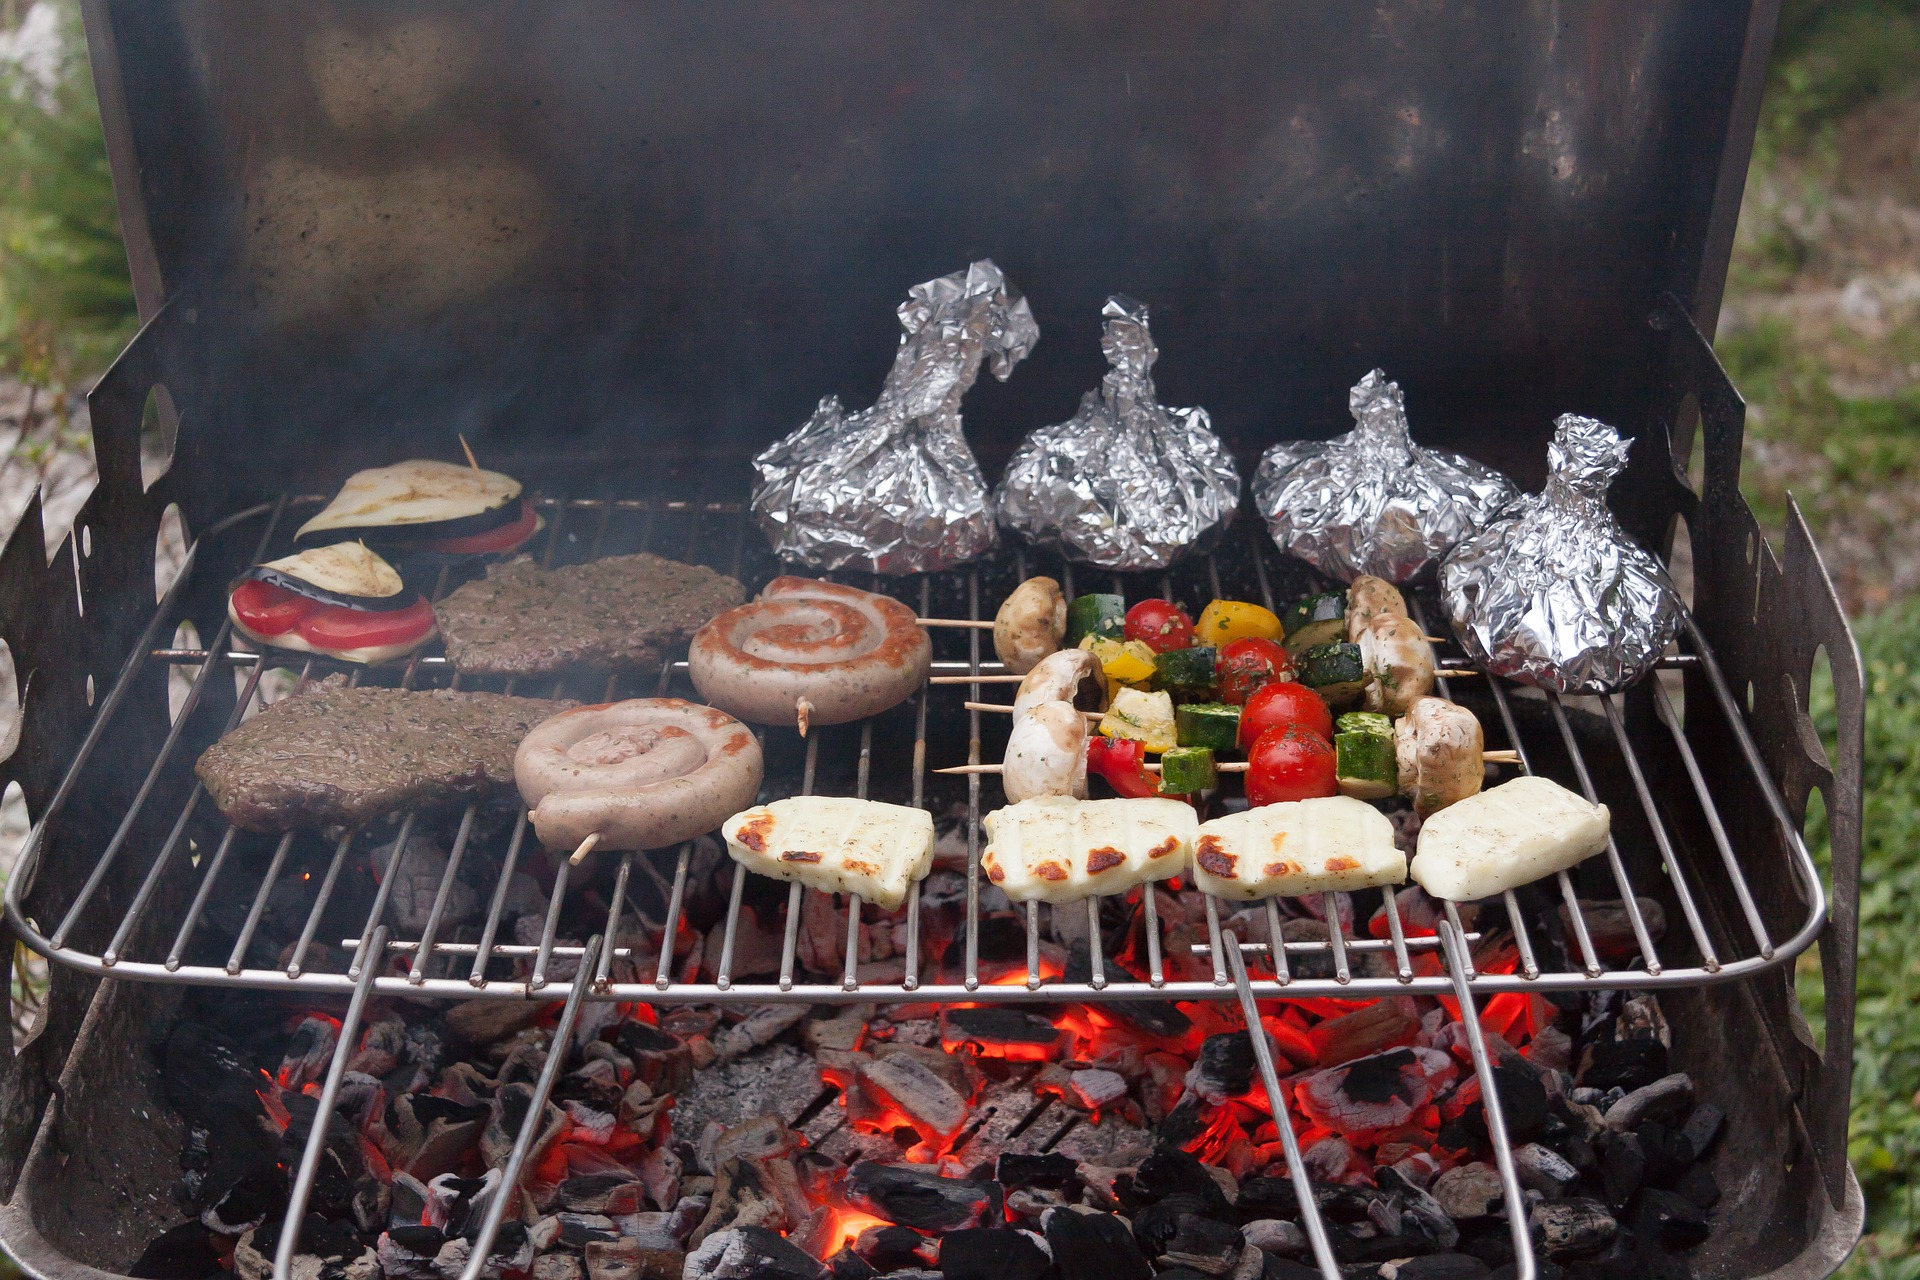 The king of the barbecue: charcoal